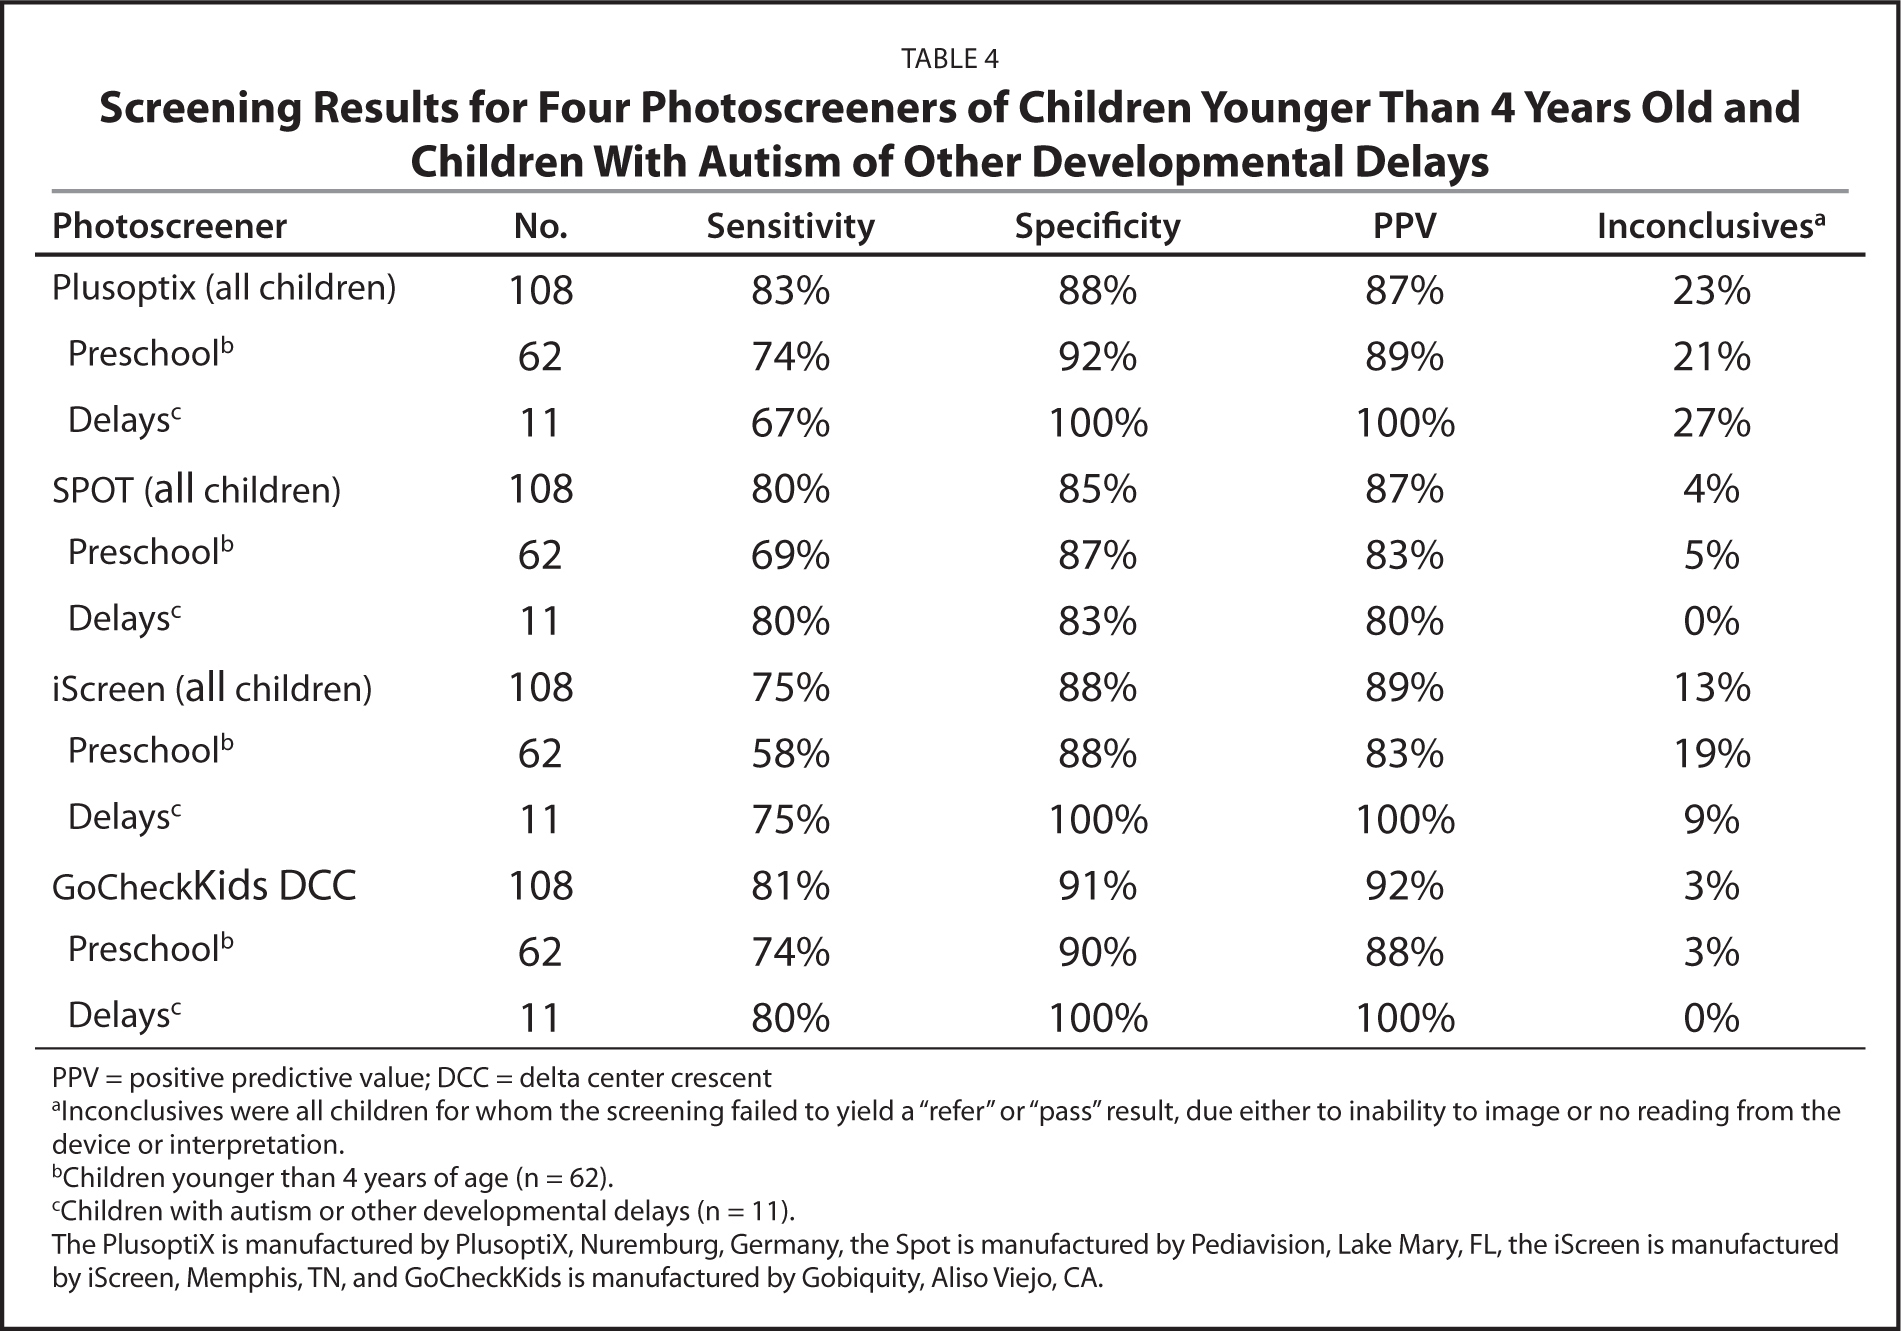 Screening Results for Four Photoscreeners of Children Younger Than 4 Years Old and Children With Autism of Other Developmental Delays